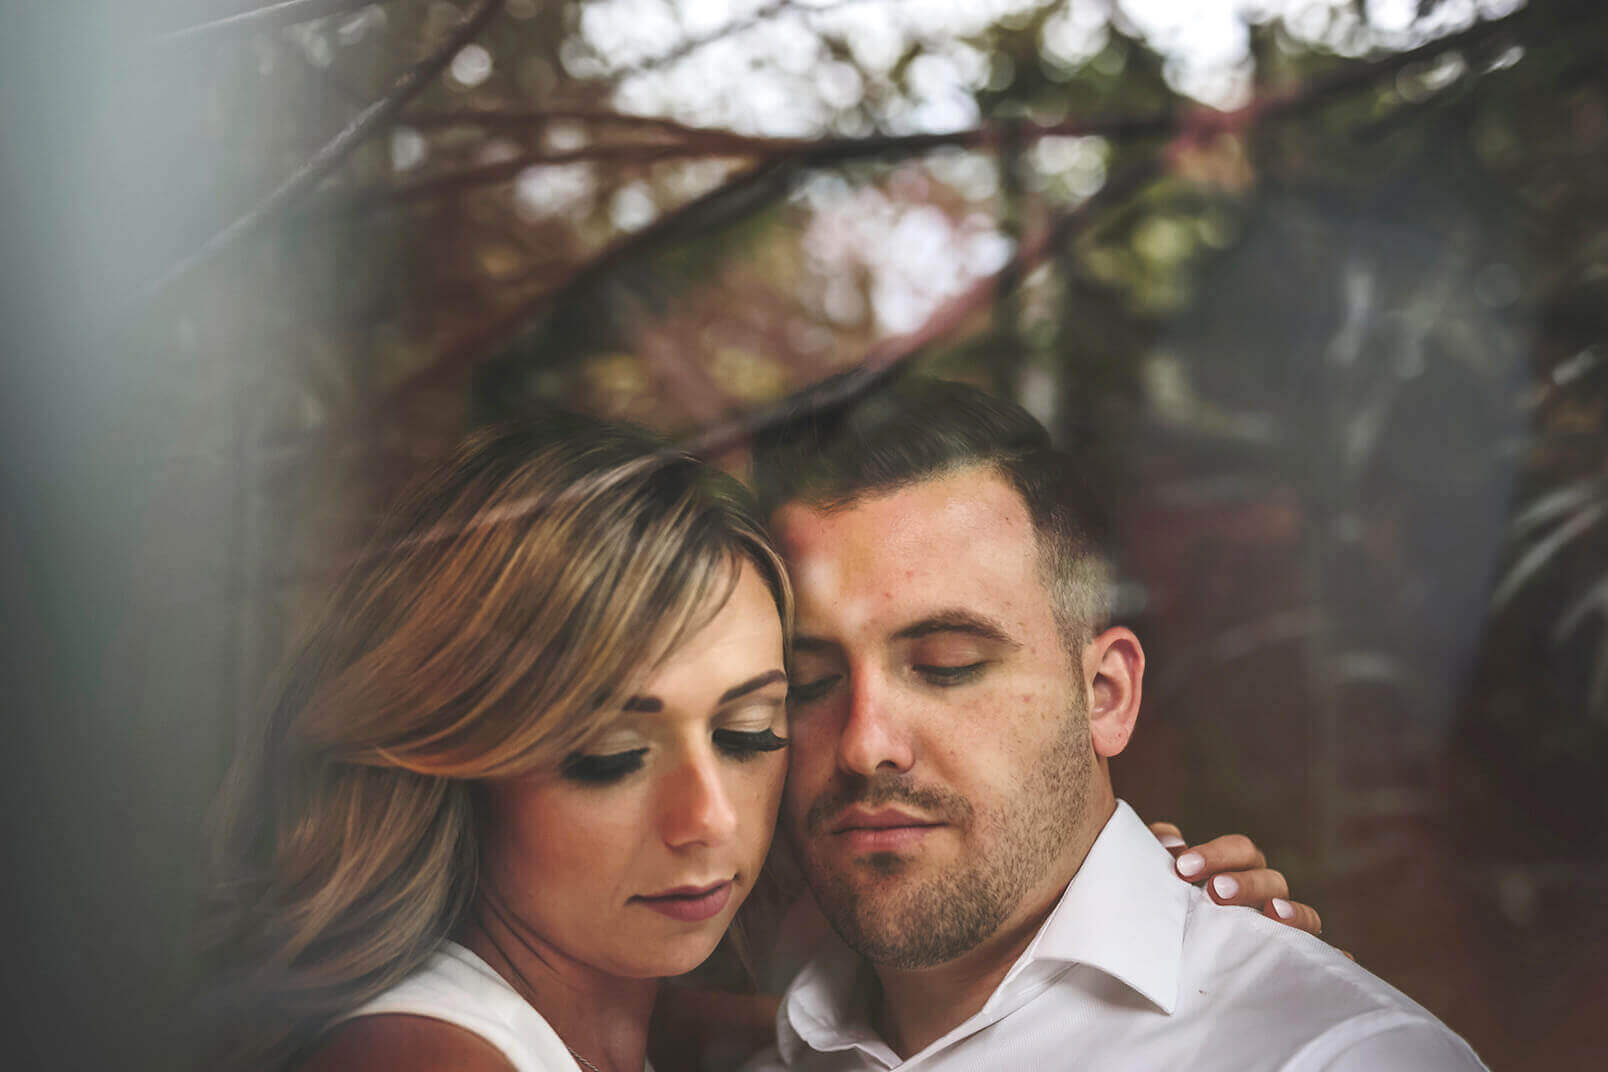 A portrait of a couple during their wedding photo shooting session.